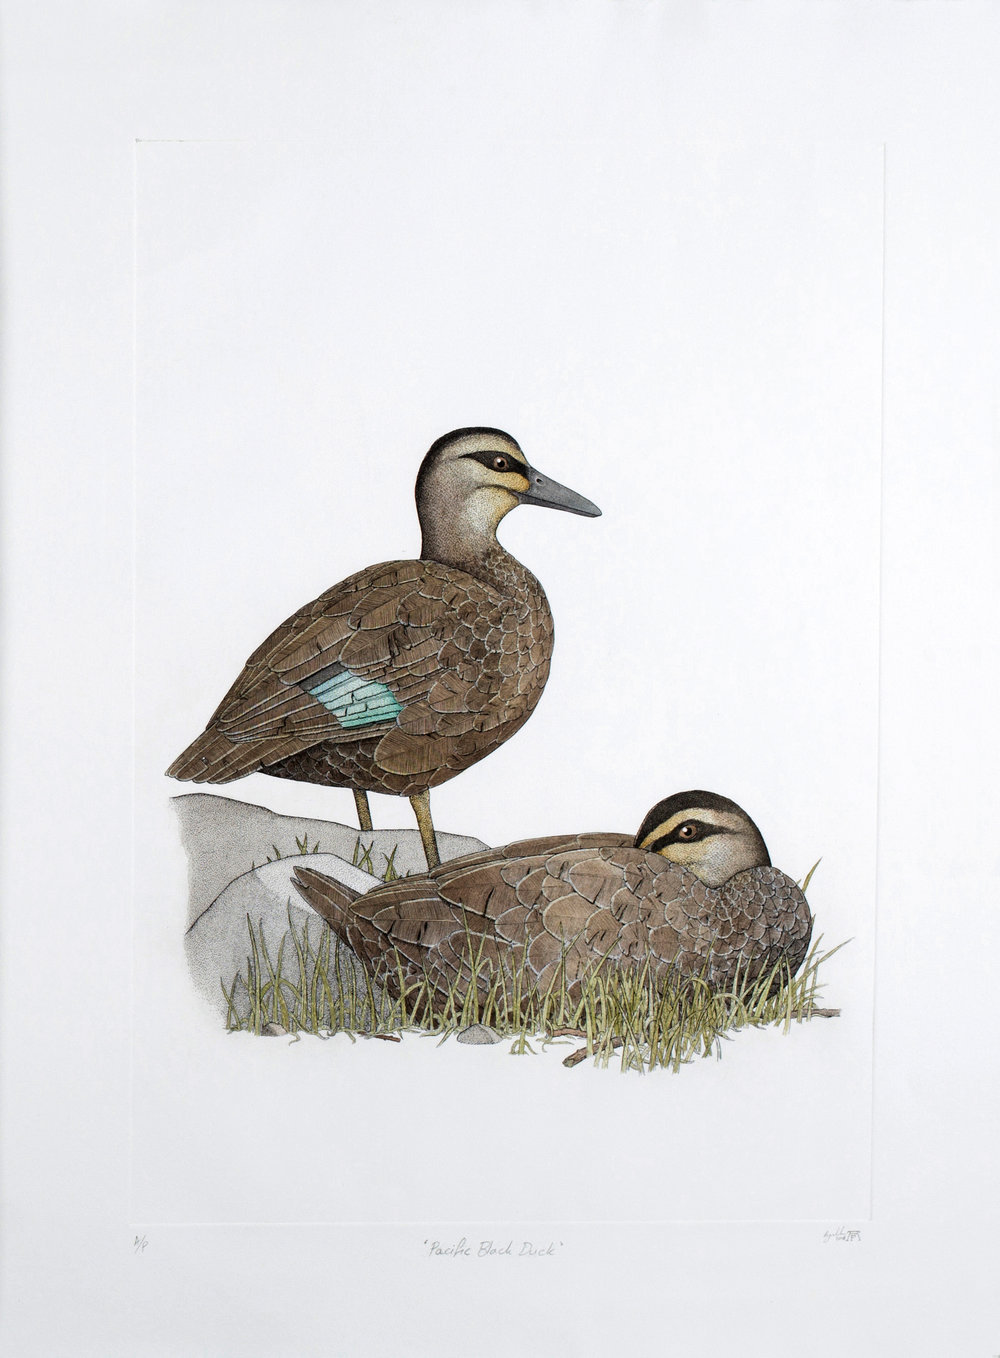 'Pacific Black Duck'